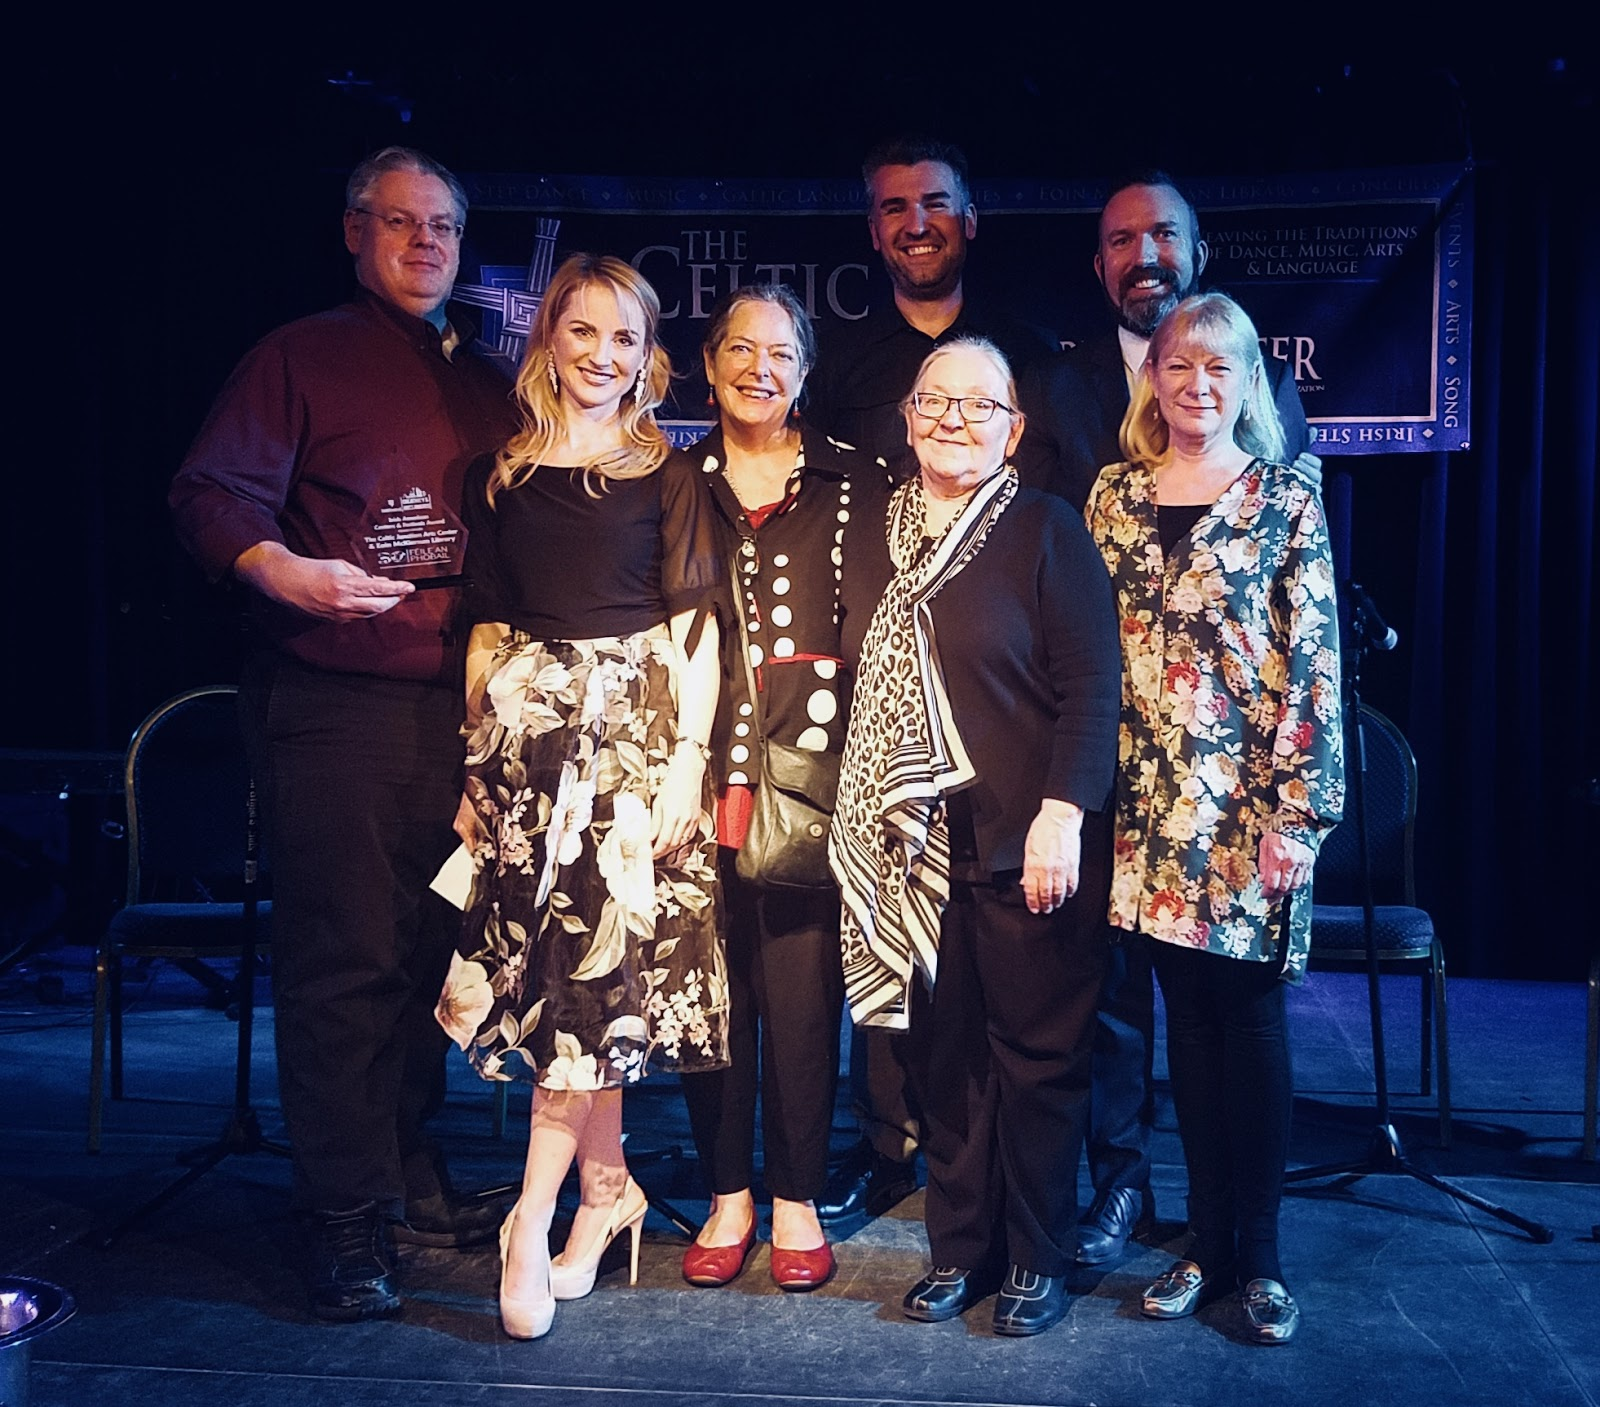 """Presenting the Irish Central """"Creativity and Arts"""" Award to Celtic Junction Arts Center for """"Best Irish American Center/Festival"""" with CJAC's Board of Directors (left to right; Michael Gibbons, Natalie Nugent O'Shea, Mary Lane, Cormac O'Se, JoAnn Vano, Vice Consul of the Midwest Justin Dolan, Laura MacKenzie, and Sally Evans (not pictured)."""